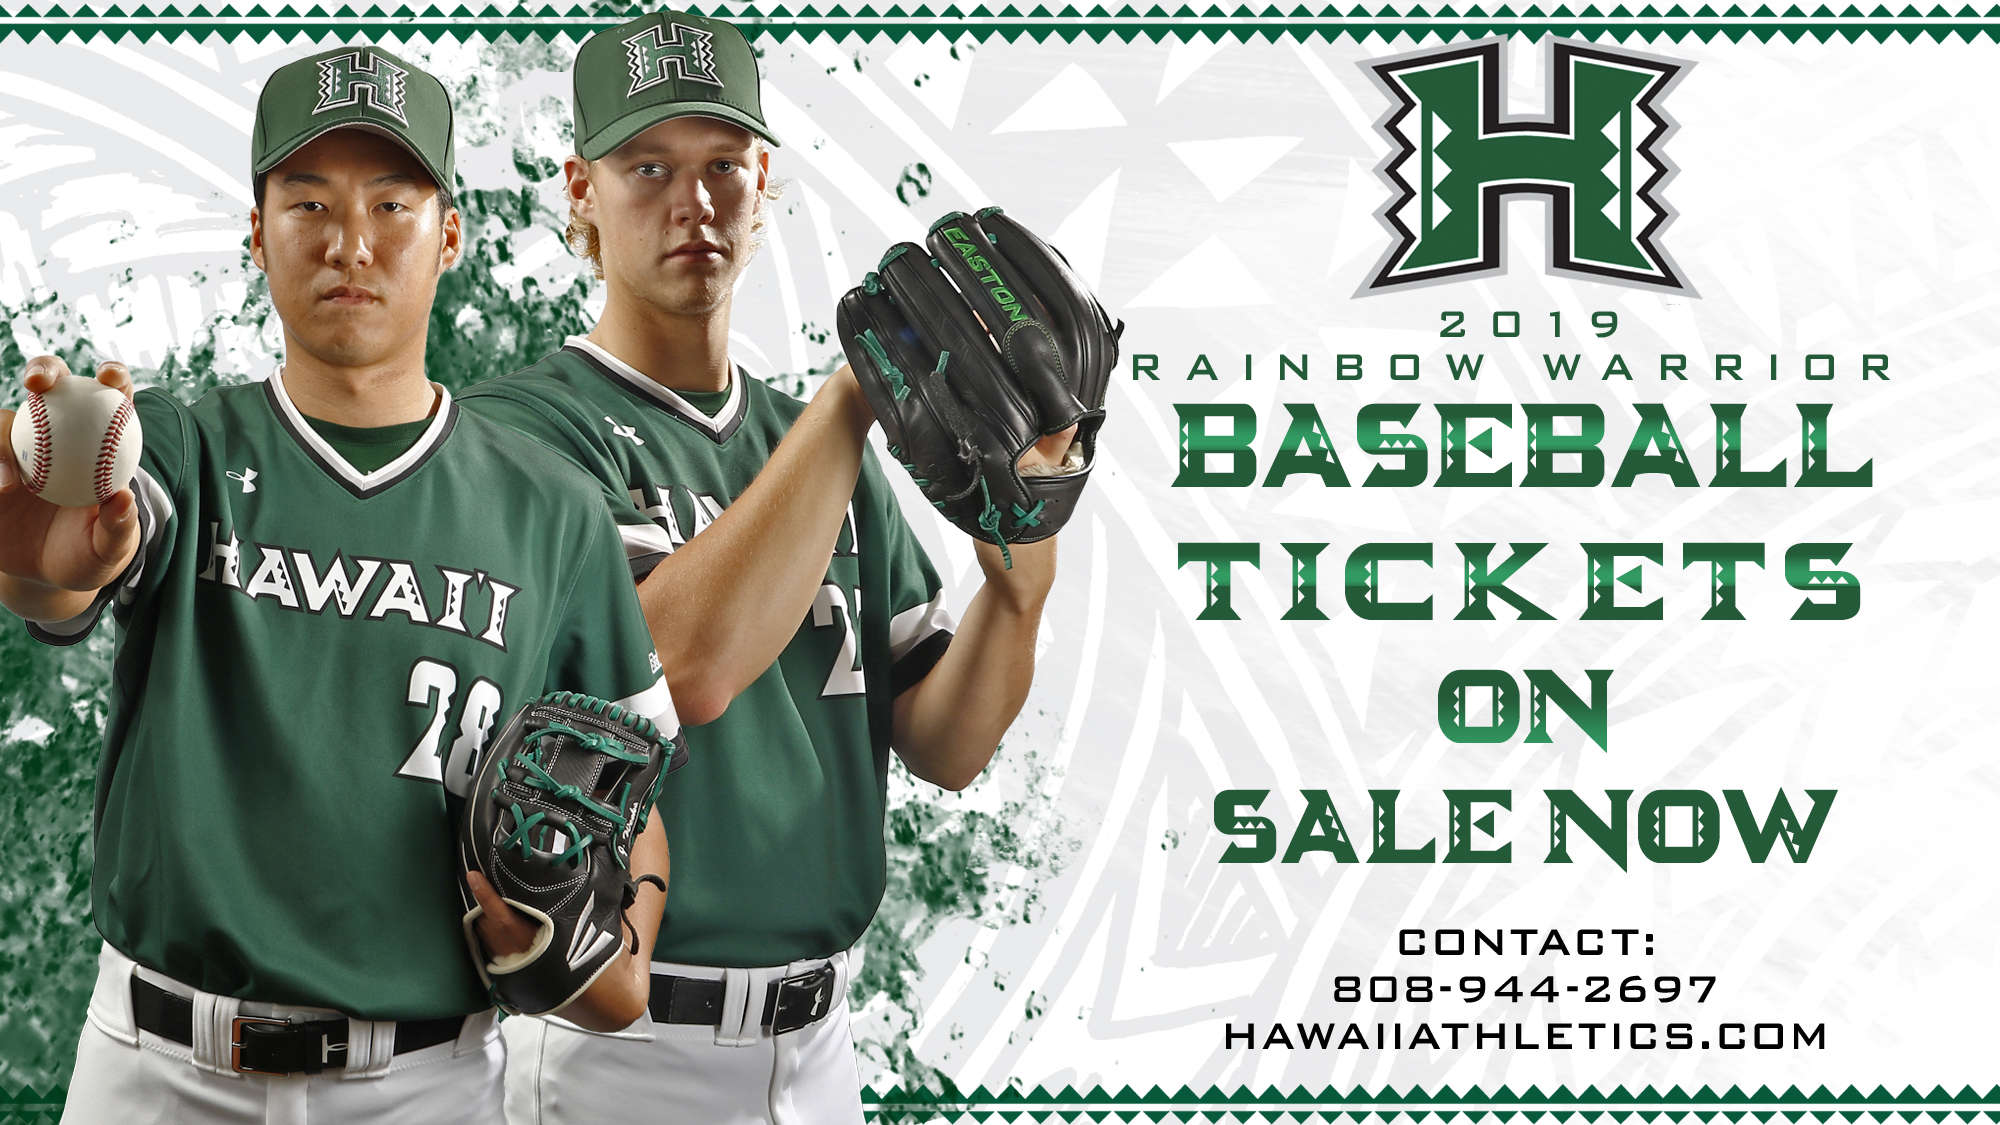 Baseball Single Game Tickets on Sale Now - University of Hawai'i at